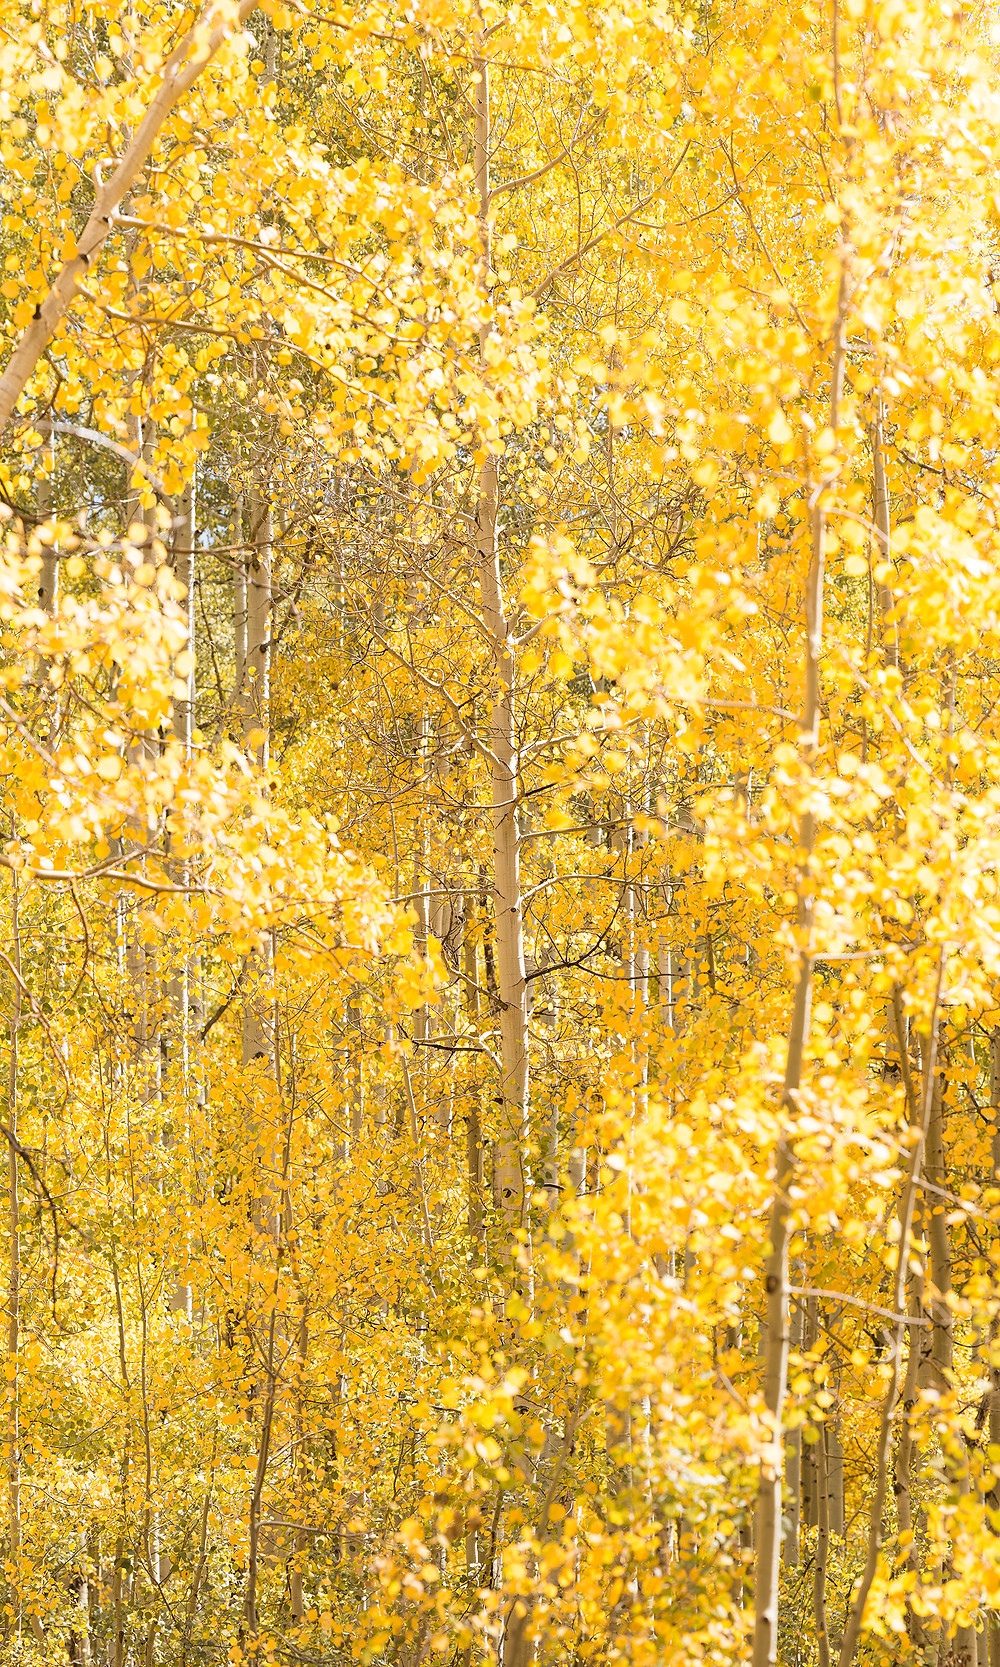 A composition of nothing but bright yellow aspen leaves in the peak of fall soaked in bright afternoon sunlight in Crested Butte, Colorado.